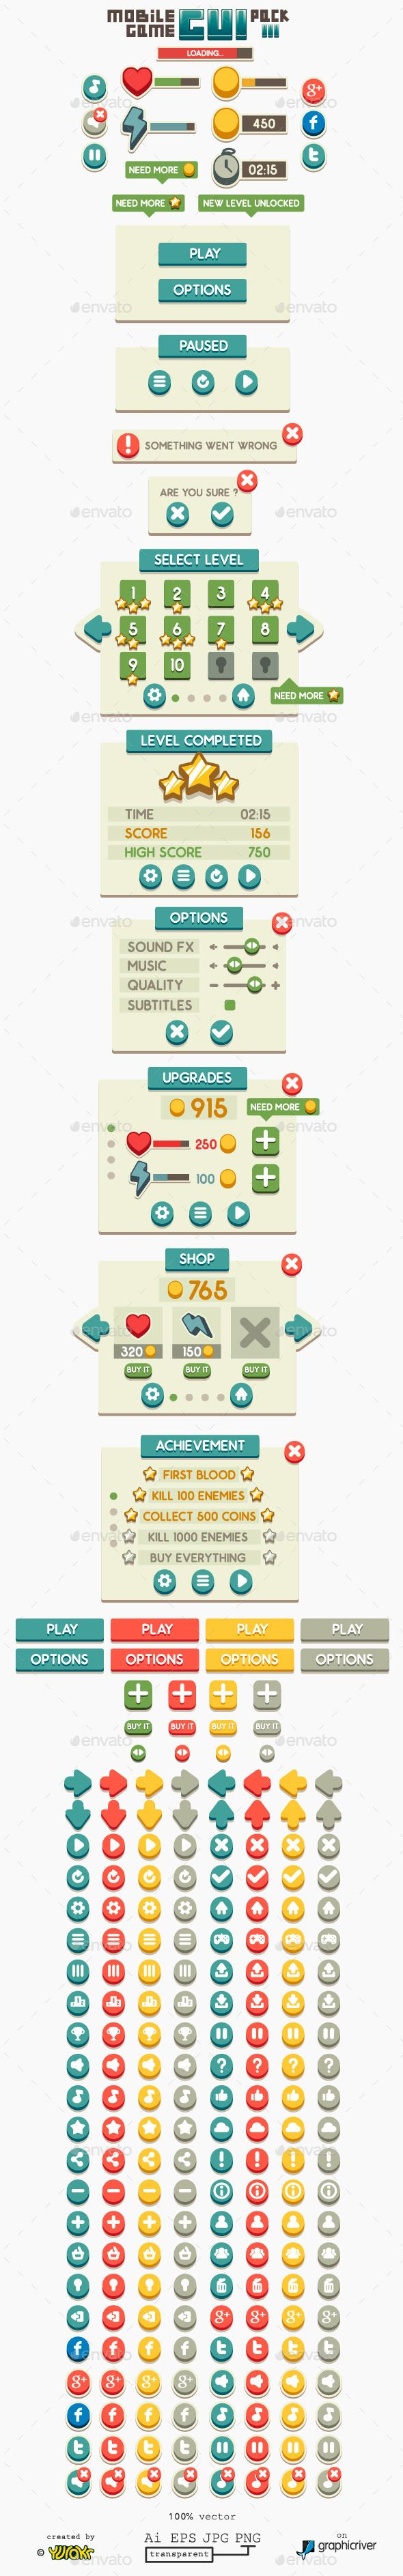 Mobile Game GUI Pack Vector EPS, AI Illustrator. Download here: https://graphicriver.net/item/mobile-game-gui-pack-3/11444877?ref=ksioks